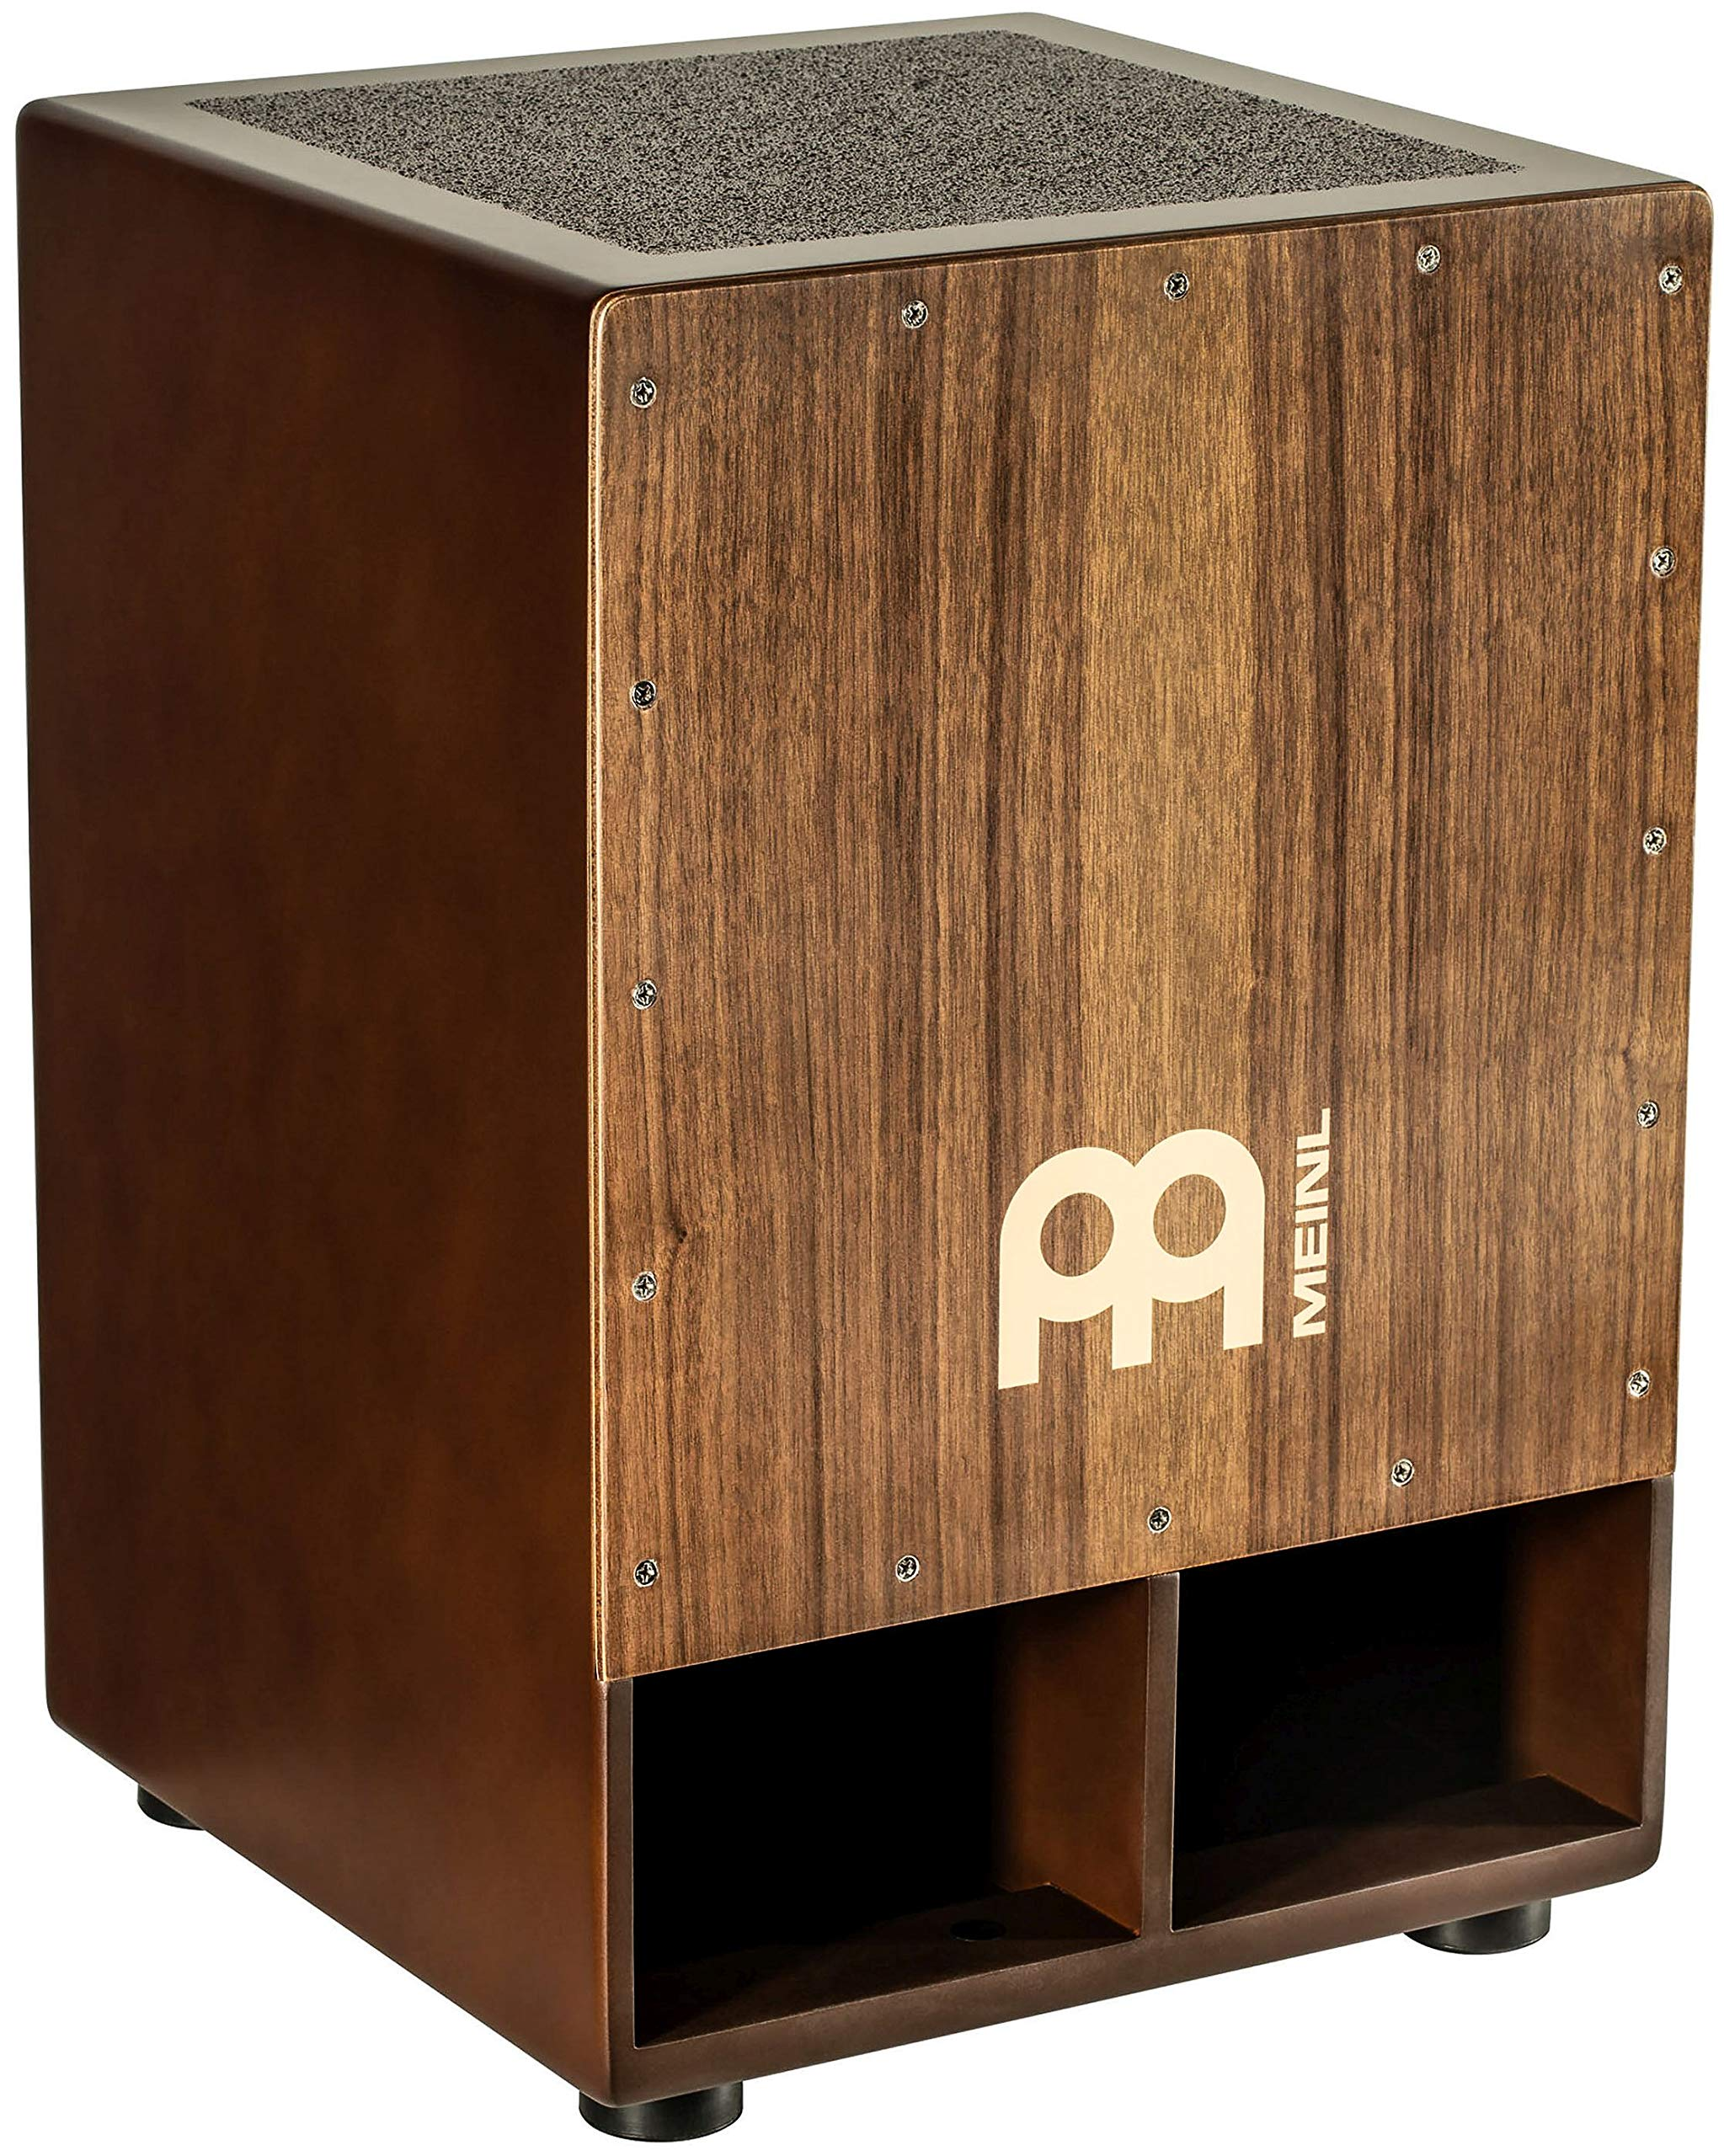 Meinl Jumbo Bass Subwoofer Cajon with Internal Snares - NOT MADE IN CHINA - Walnut Playing Surface, 2-YEAR WARRANTY (SUBCAJ5WN) by Meinl Percussion